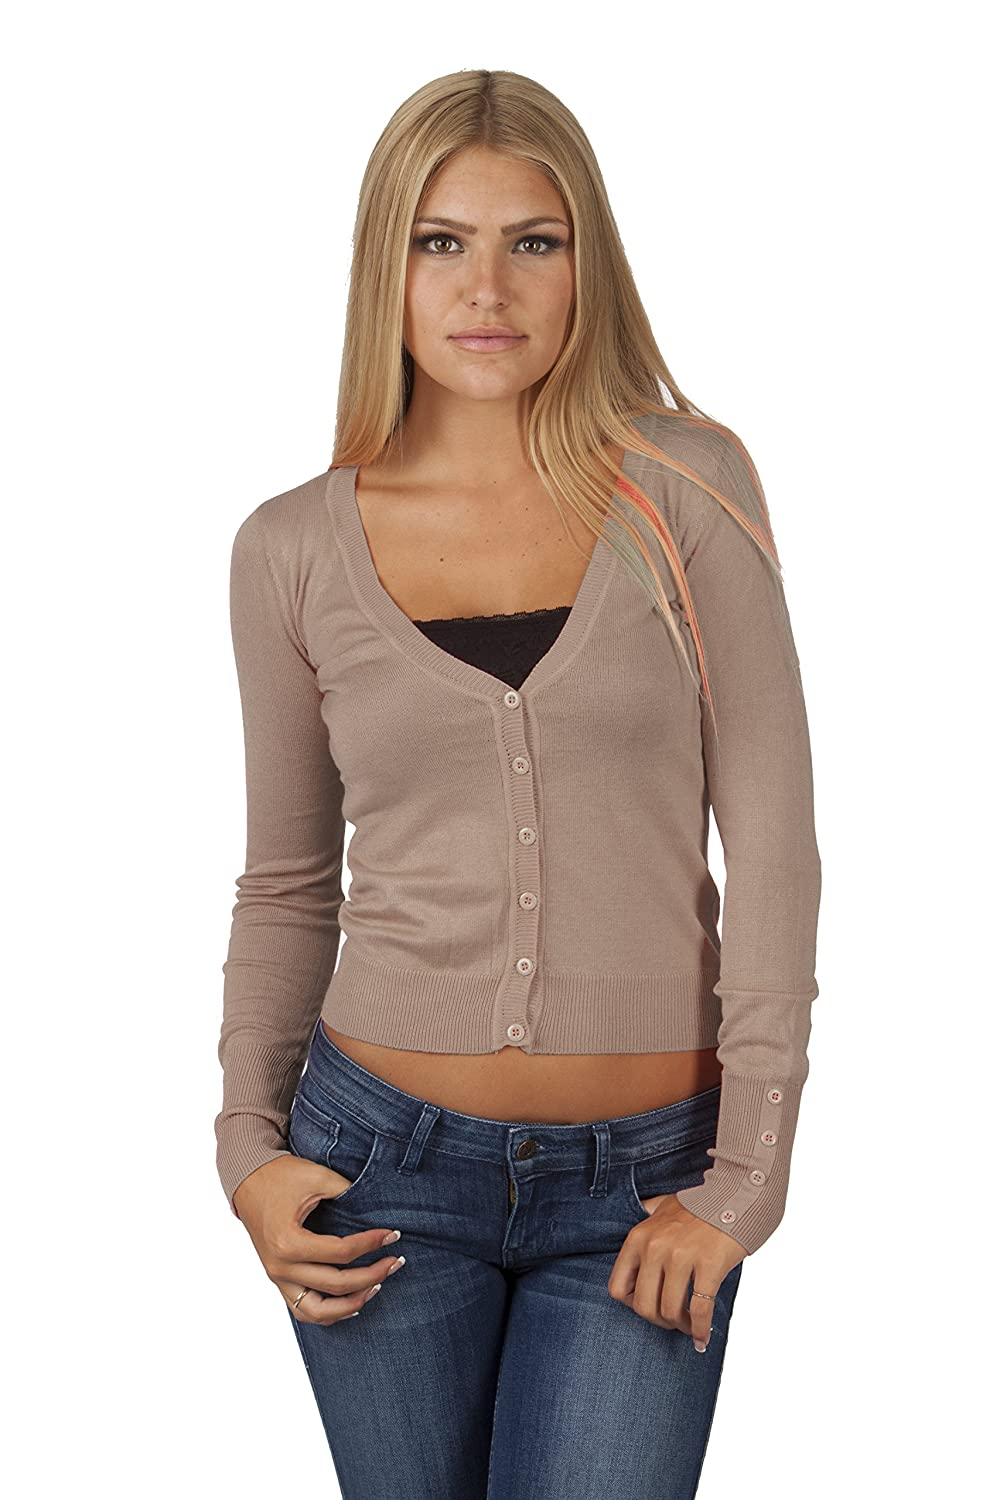 Hollywood Star Fashion Women's V-Neck Full-Sleeve Button Cardigan